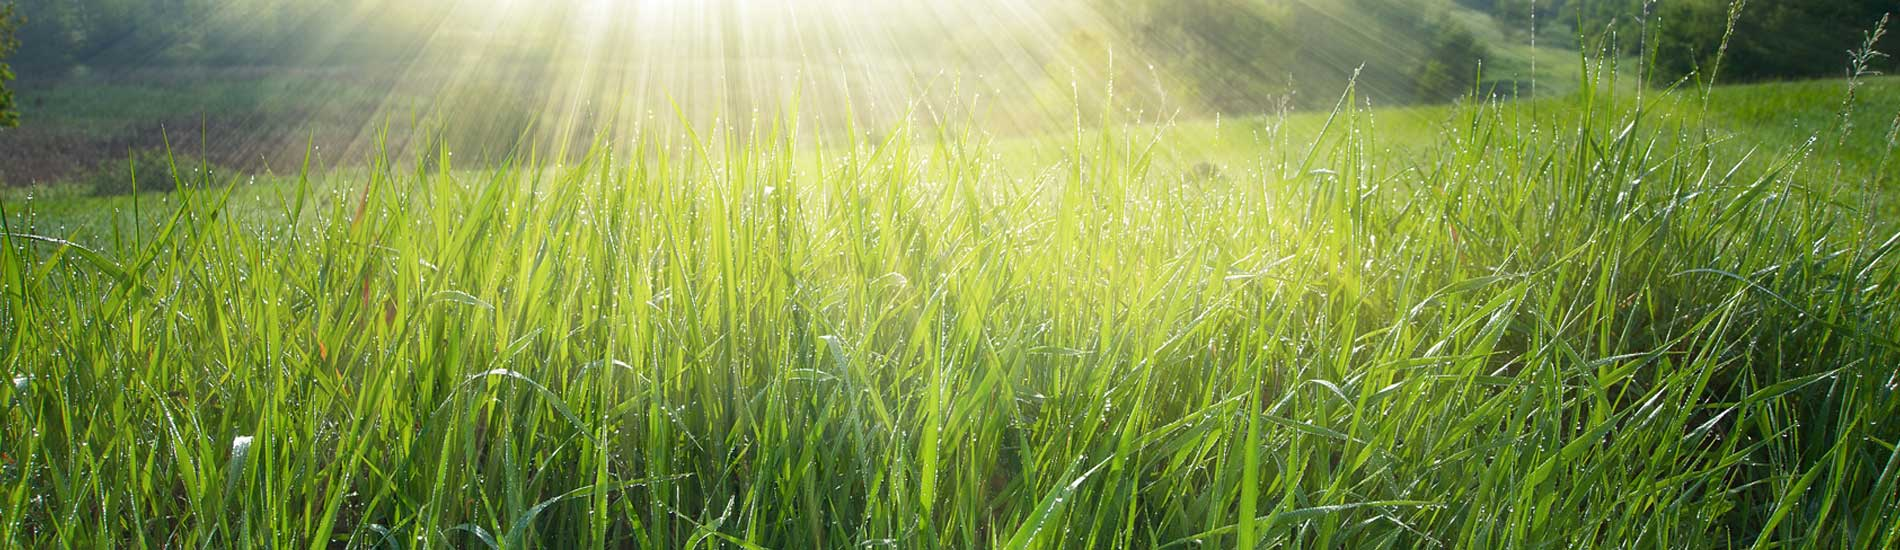 Grass in sunlight